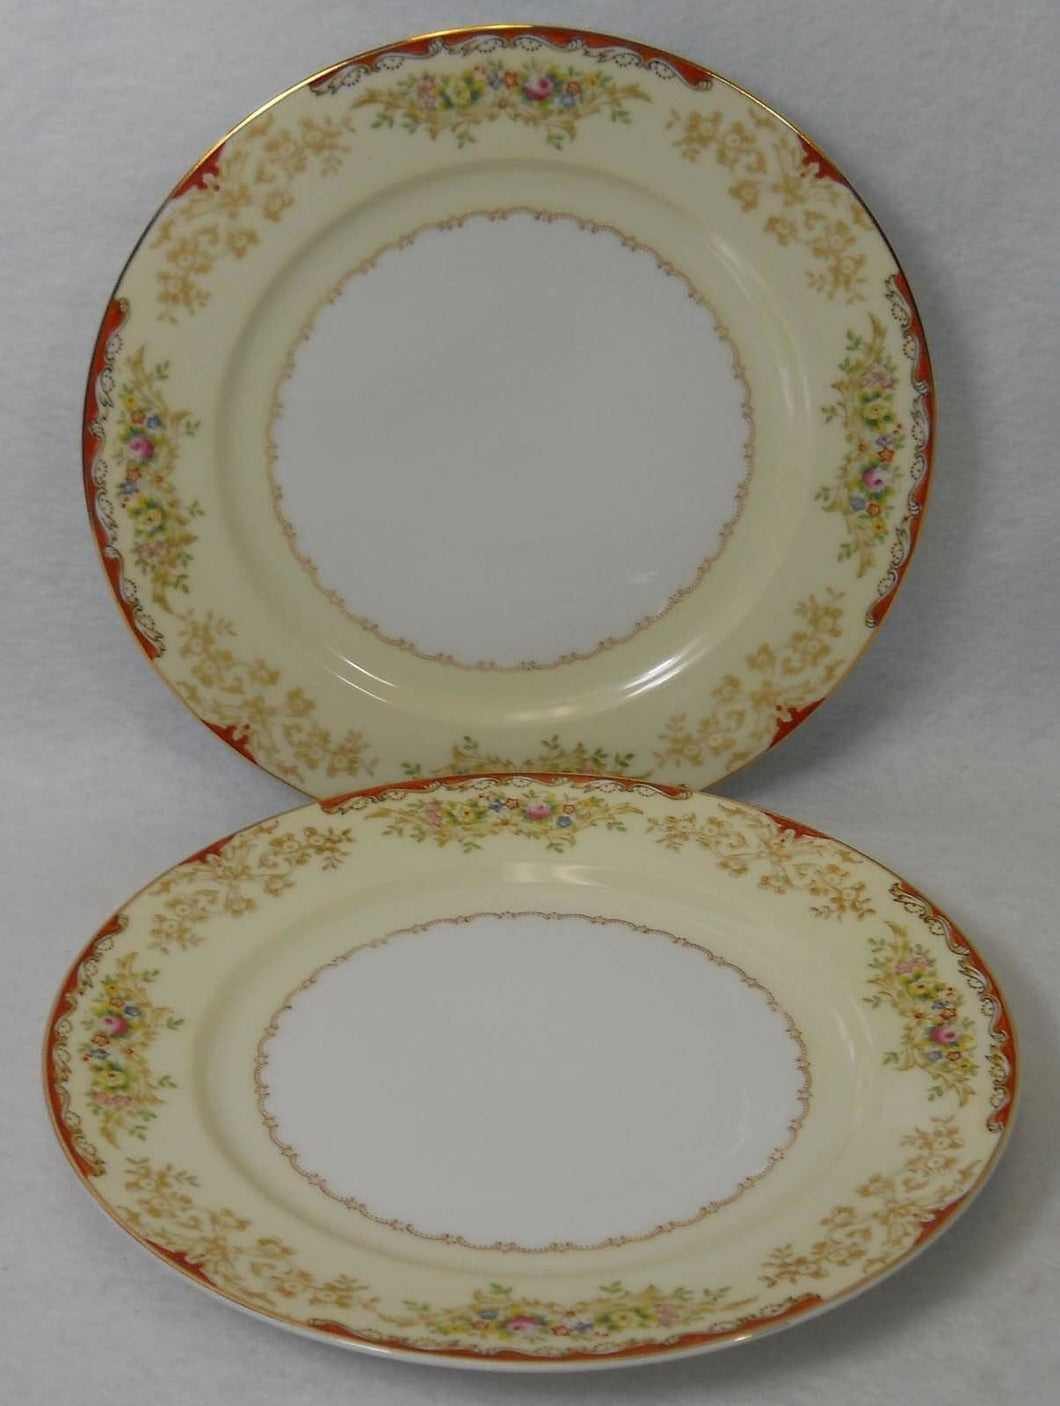 ROYAL EMBASSY china RENO pattern Salad Dessert Plate - Set of Two (2) - 7-3/4